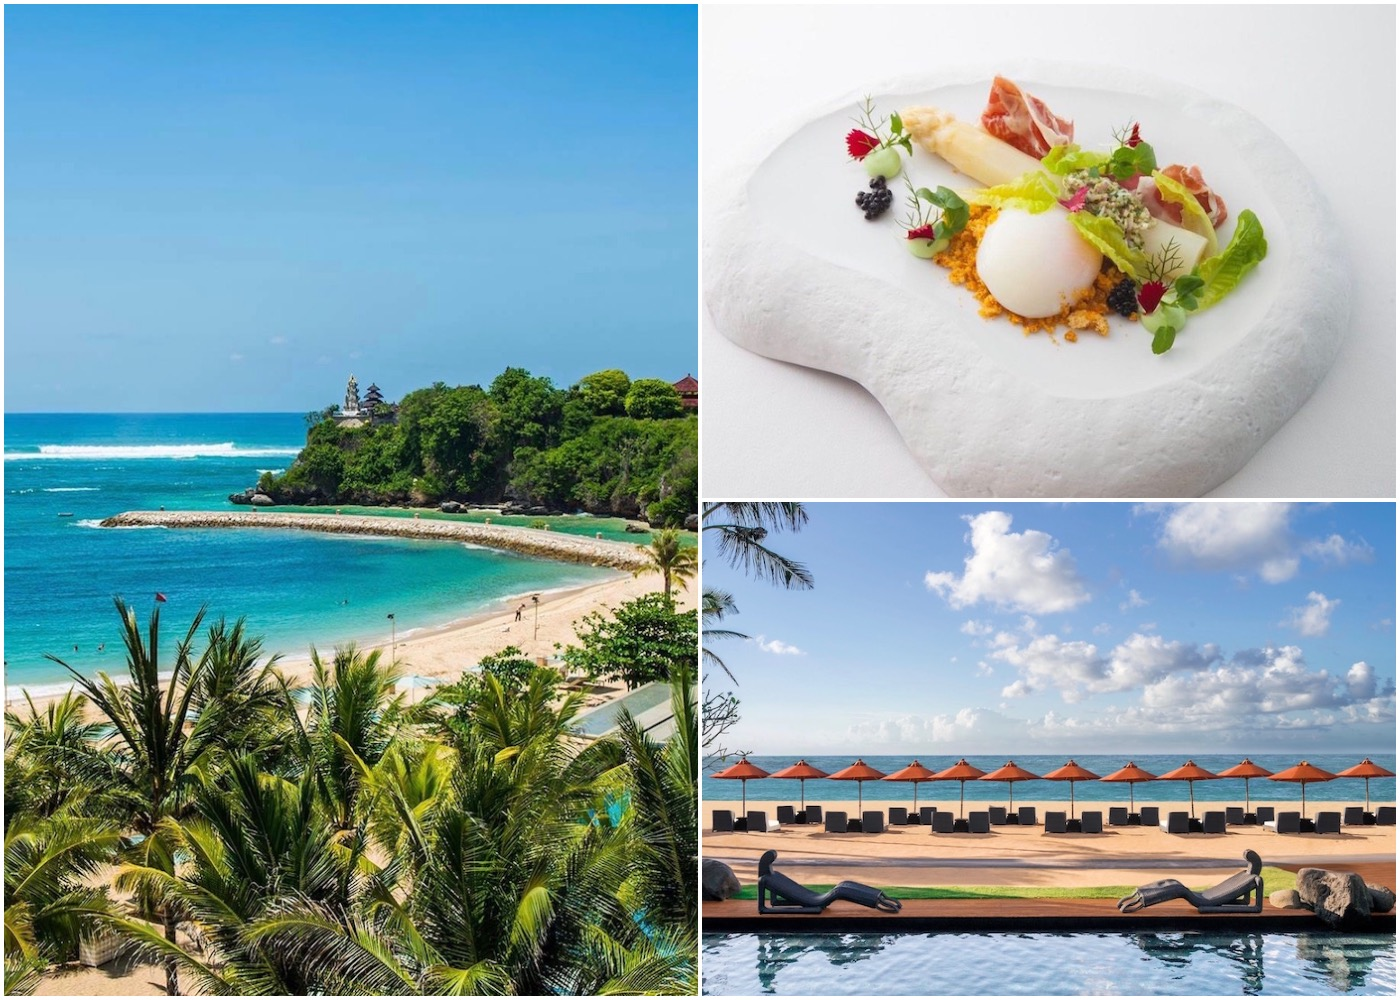 Neighbourhood Guide - where to stay, eat & beach in Nusa Dua, Bali, Indonesia